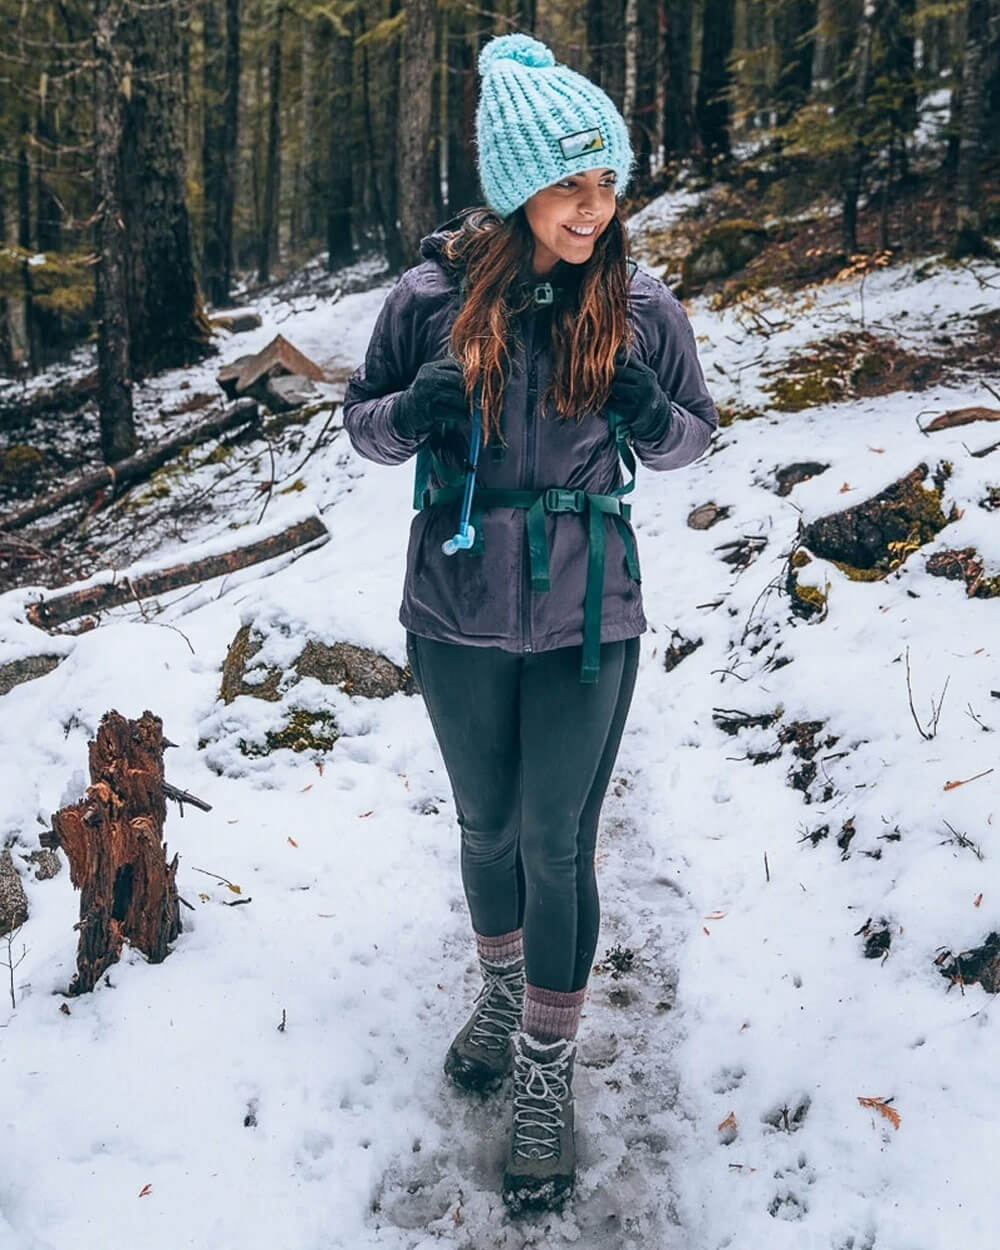 what-to-wear-hiking-winter-hiking-clothes